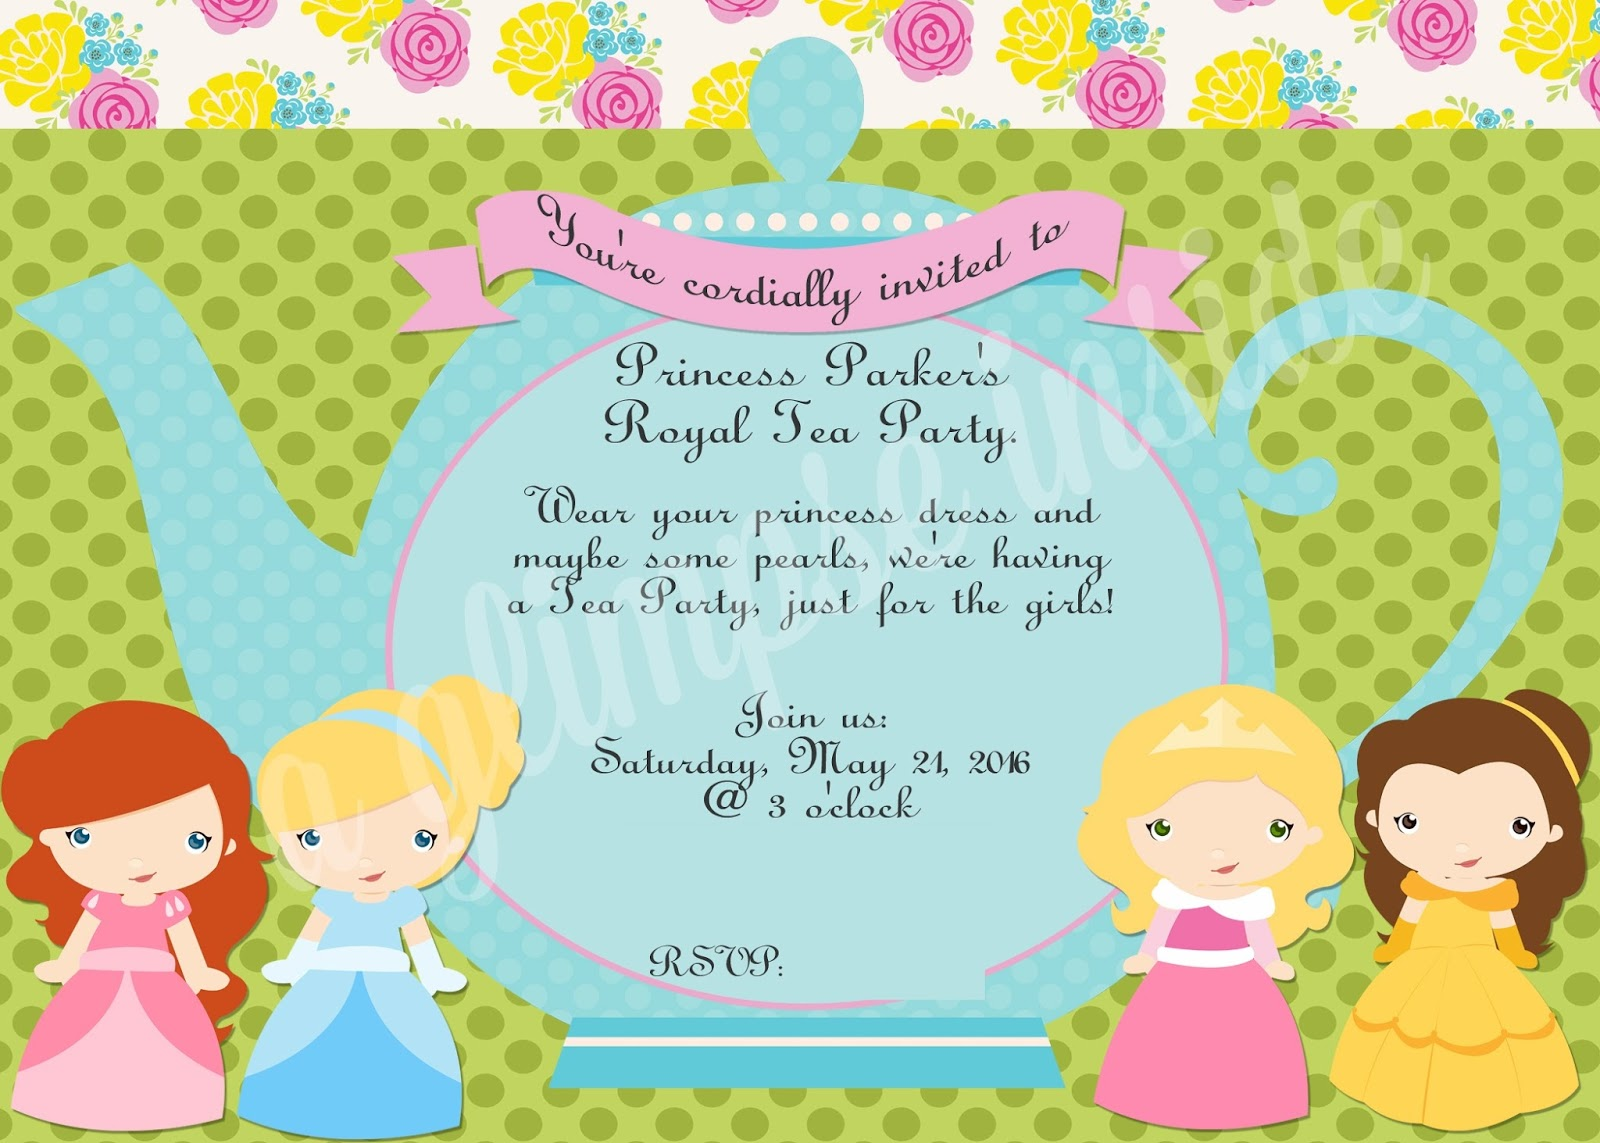 http://www.aglimpseinsideblog.com/2016/05/miss-ps-royal-tea-party-birthday-party.html